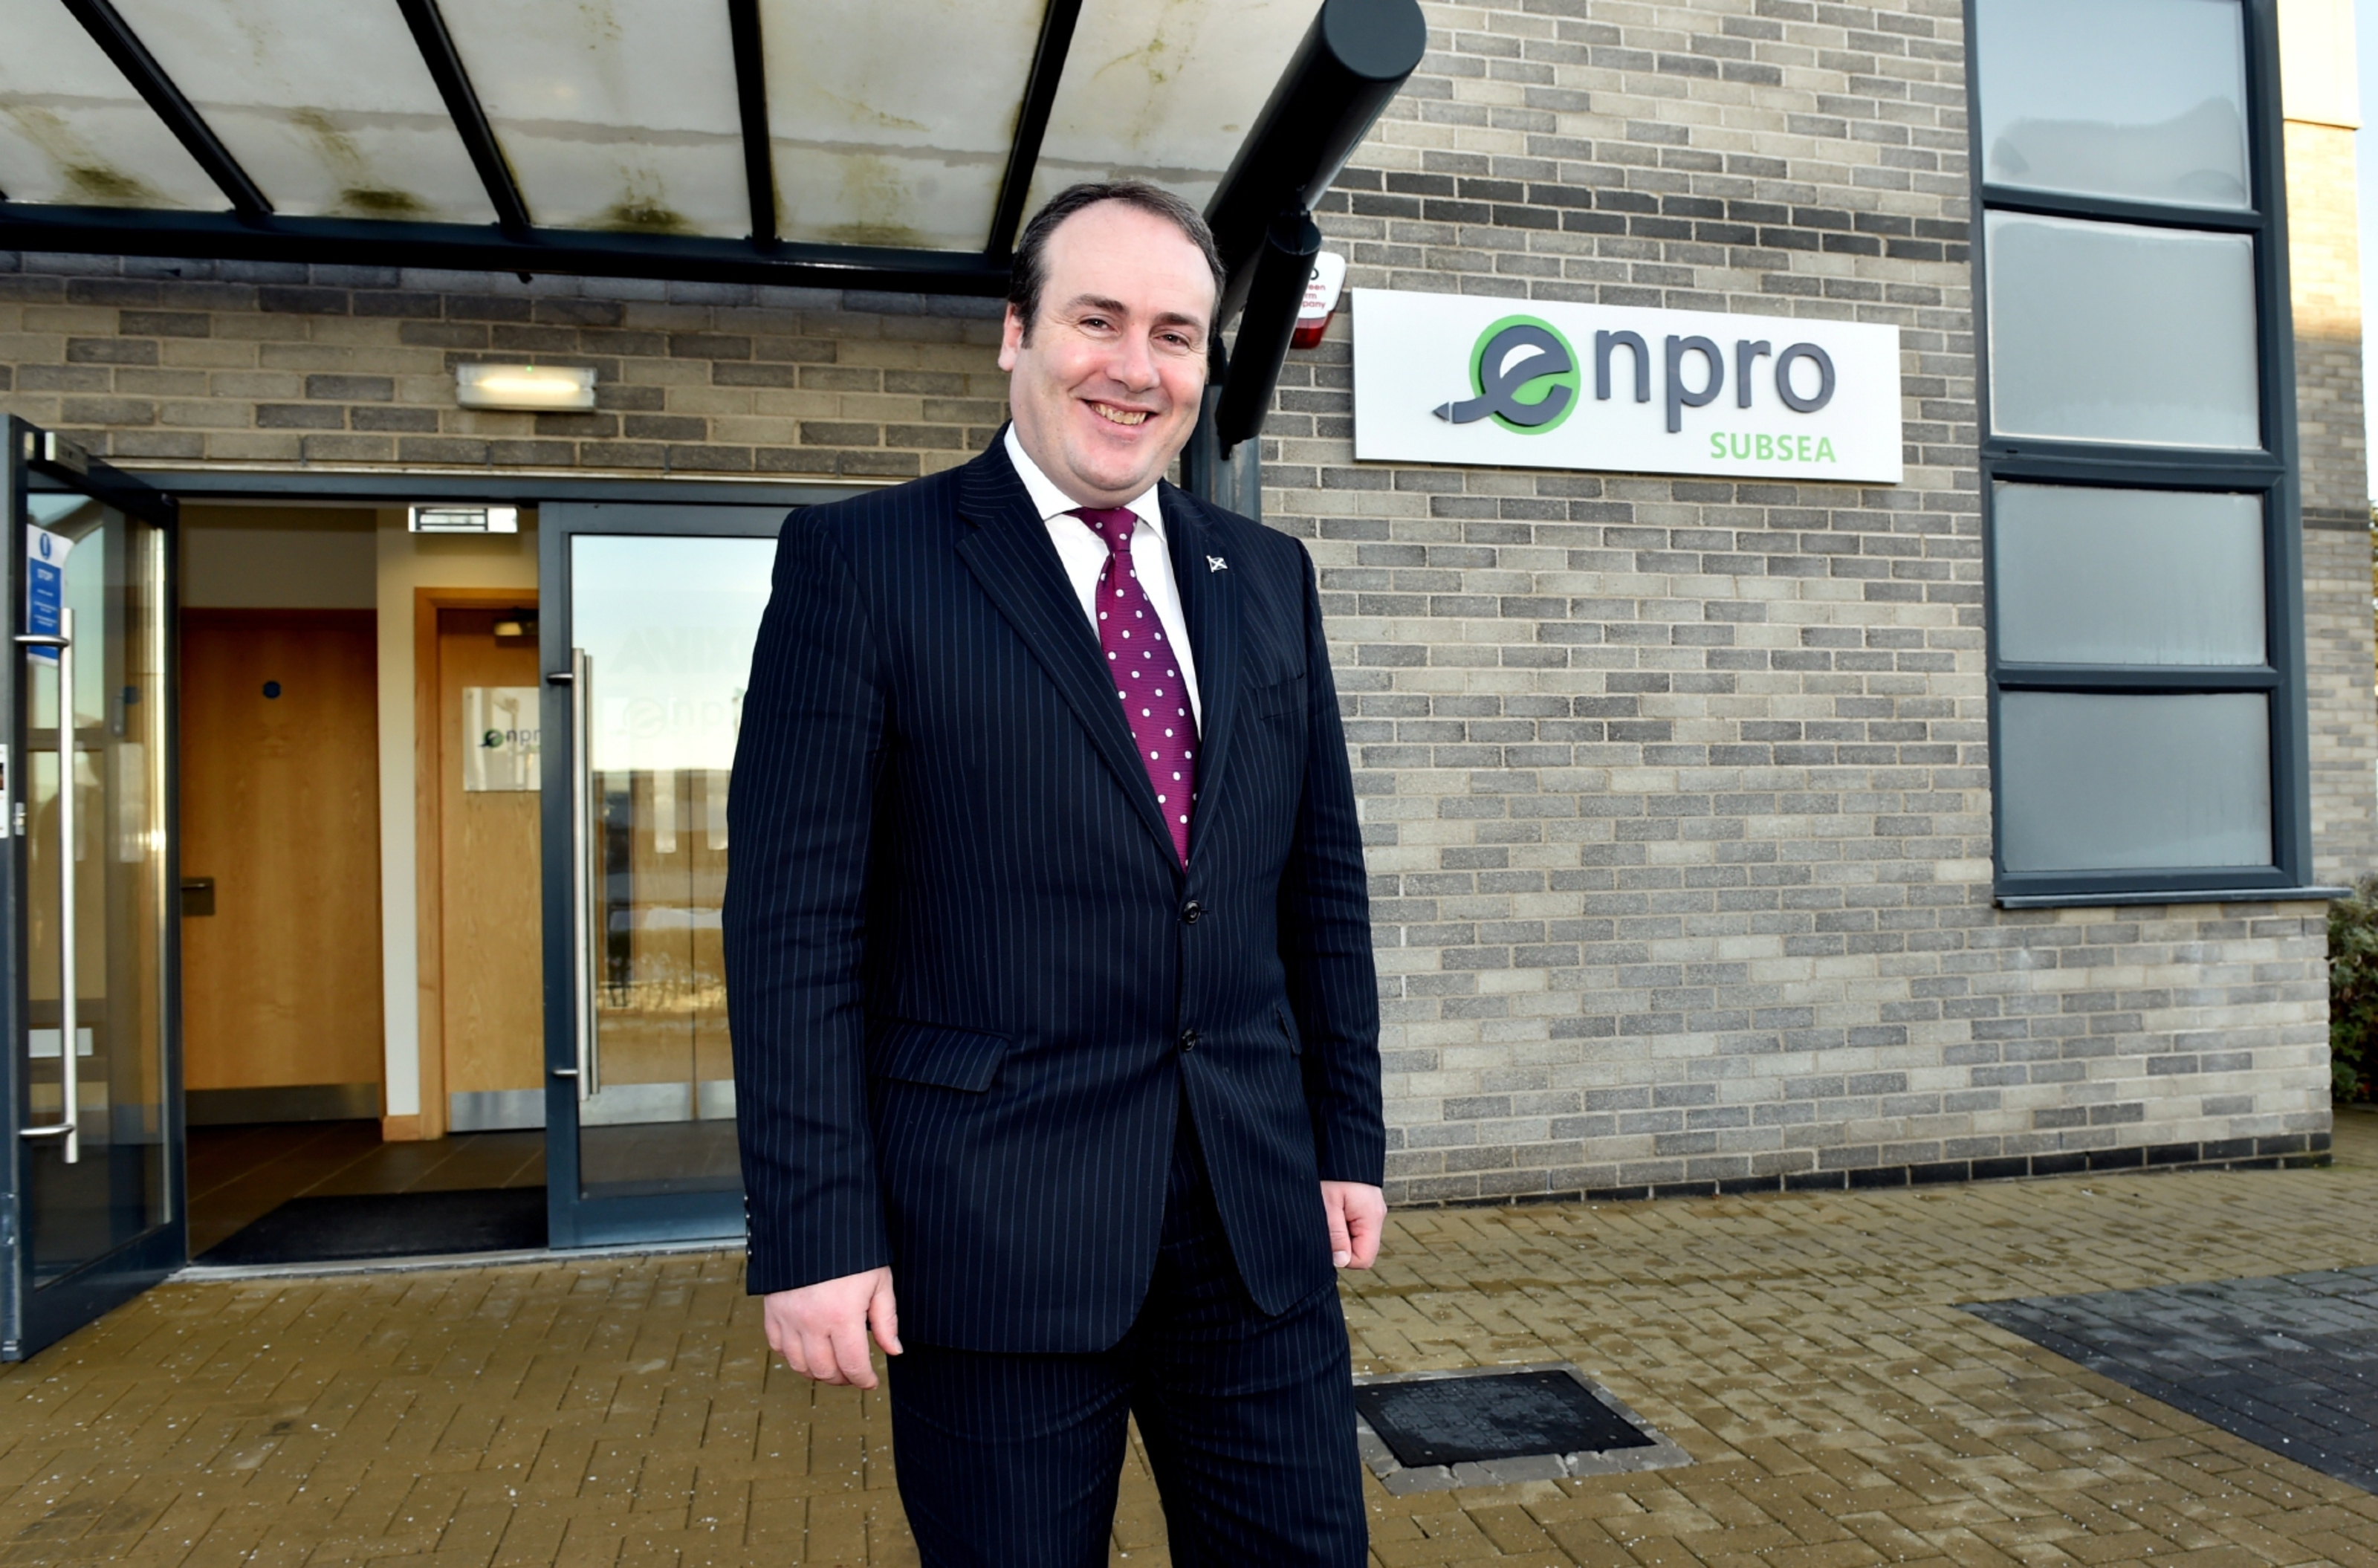 Minister of Business, Innovation and Energy, Paul Wheelhouse at  Enpro Subsea at Arnhall Business Park in Westhill, Aberdeen.